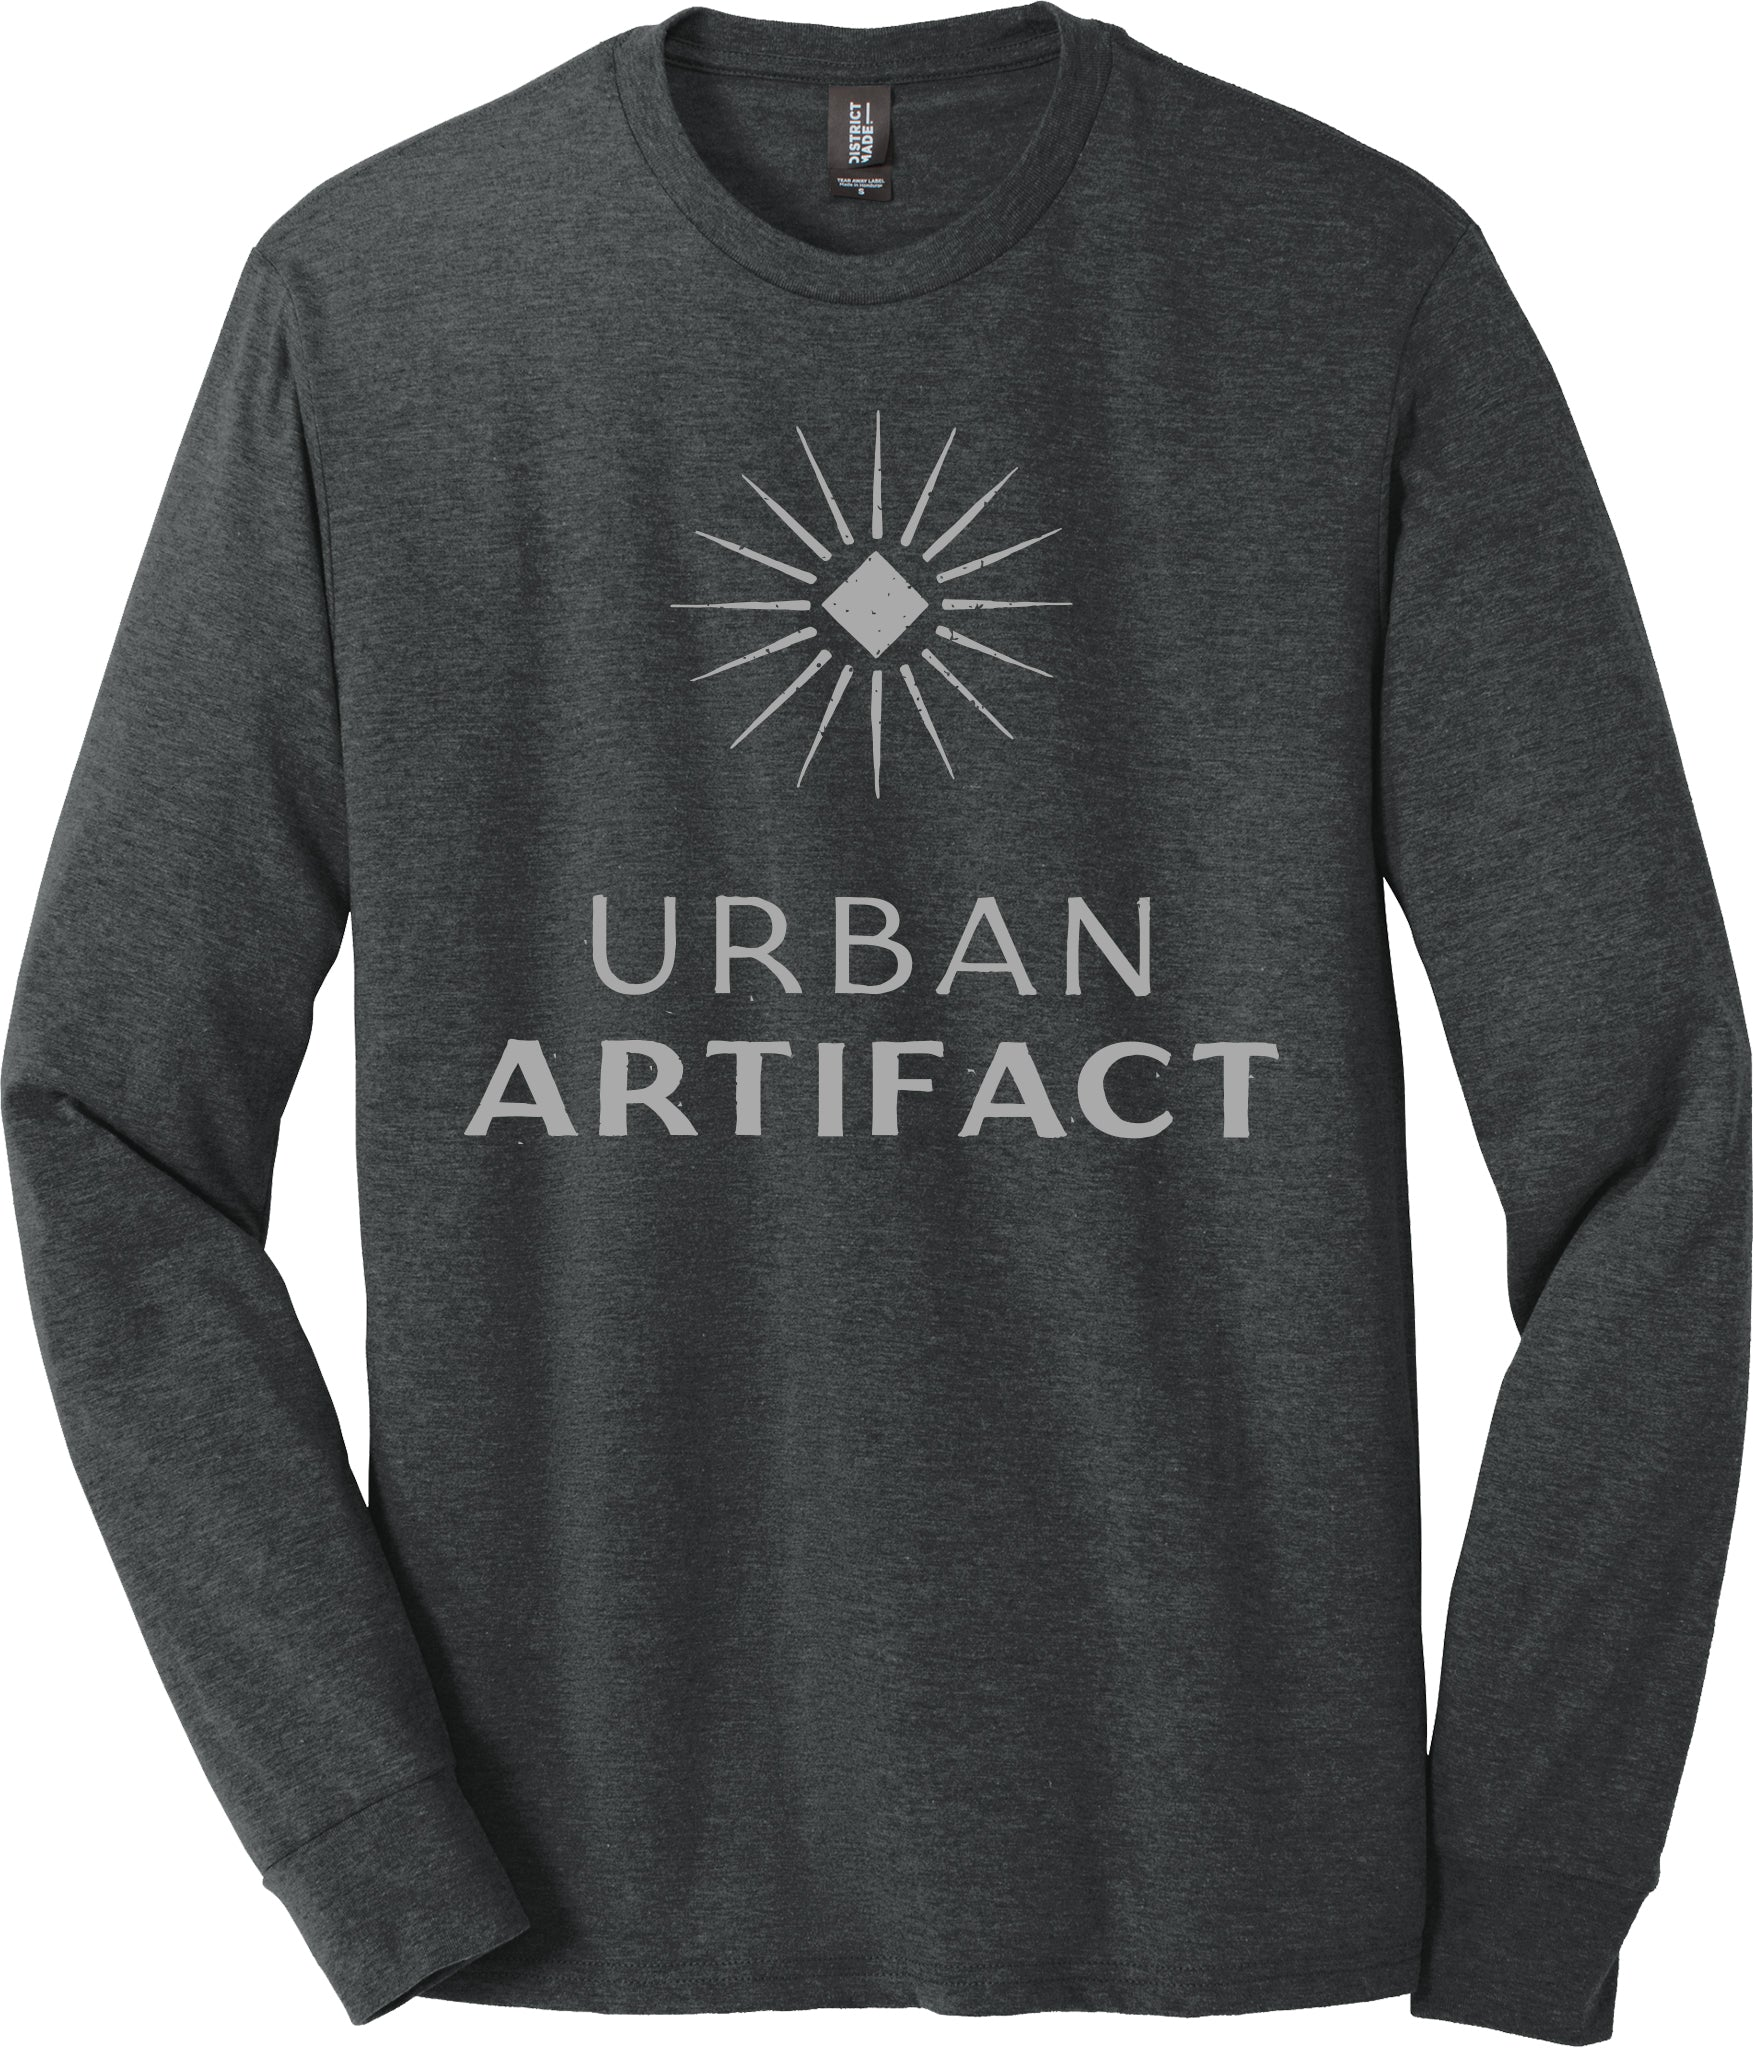 Urban Artifact Longsleeve